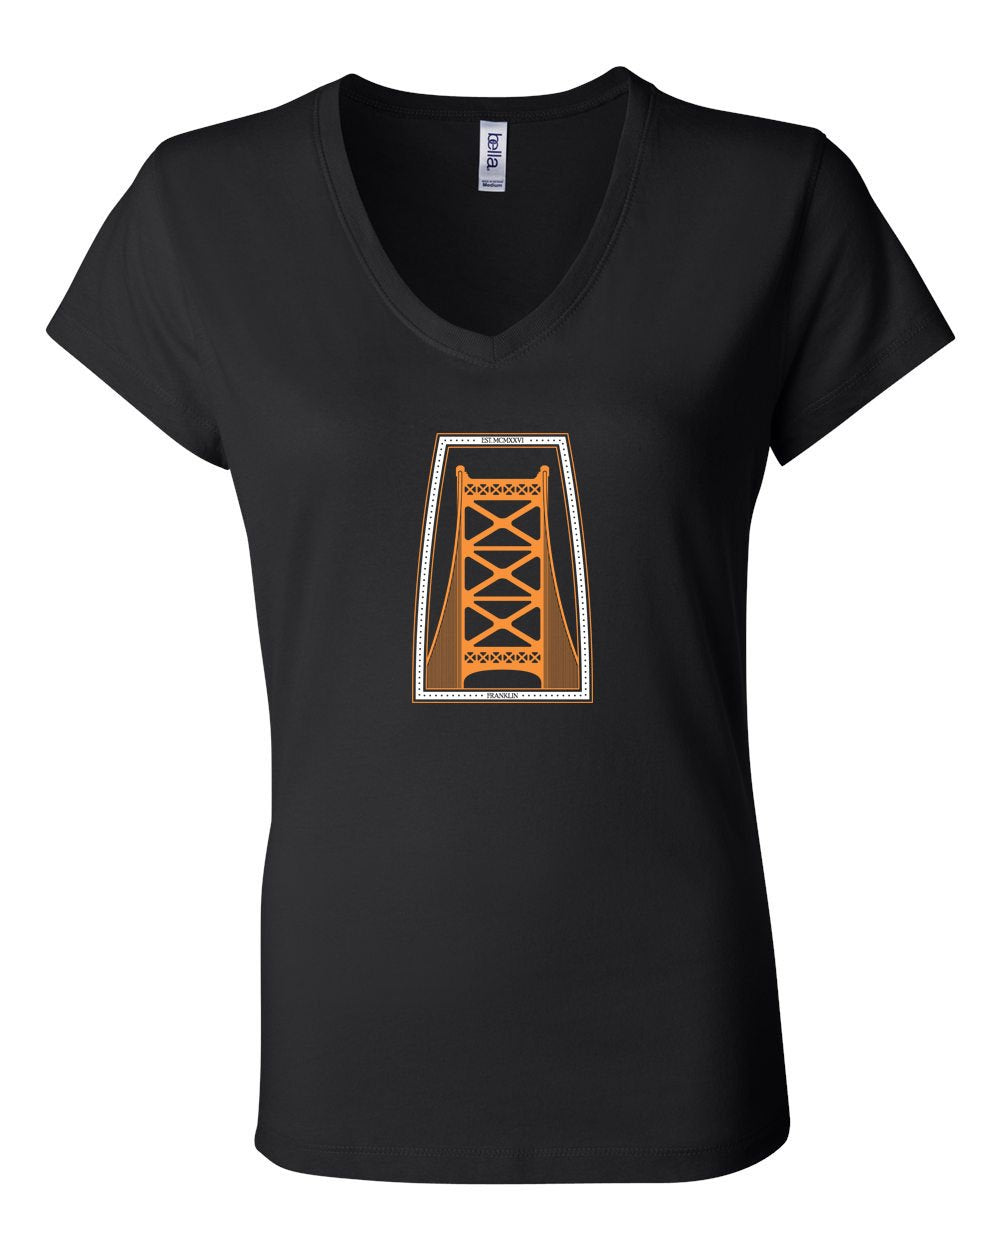 Ben Franklin Bridge Hockey LADIES Junior Fit V-Neck